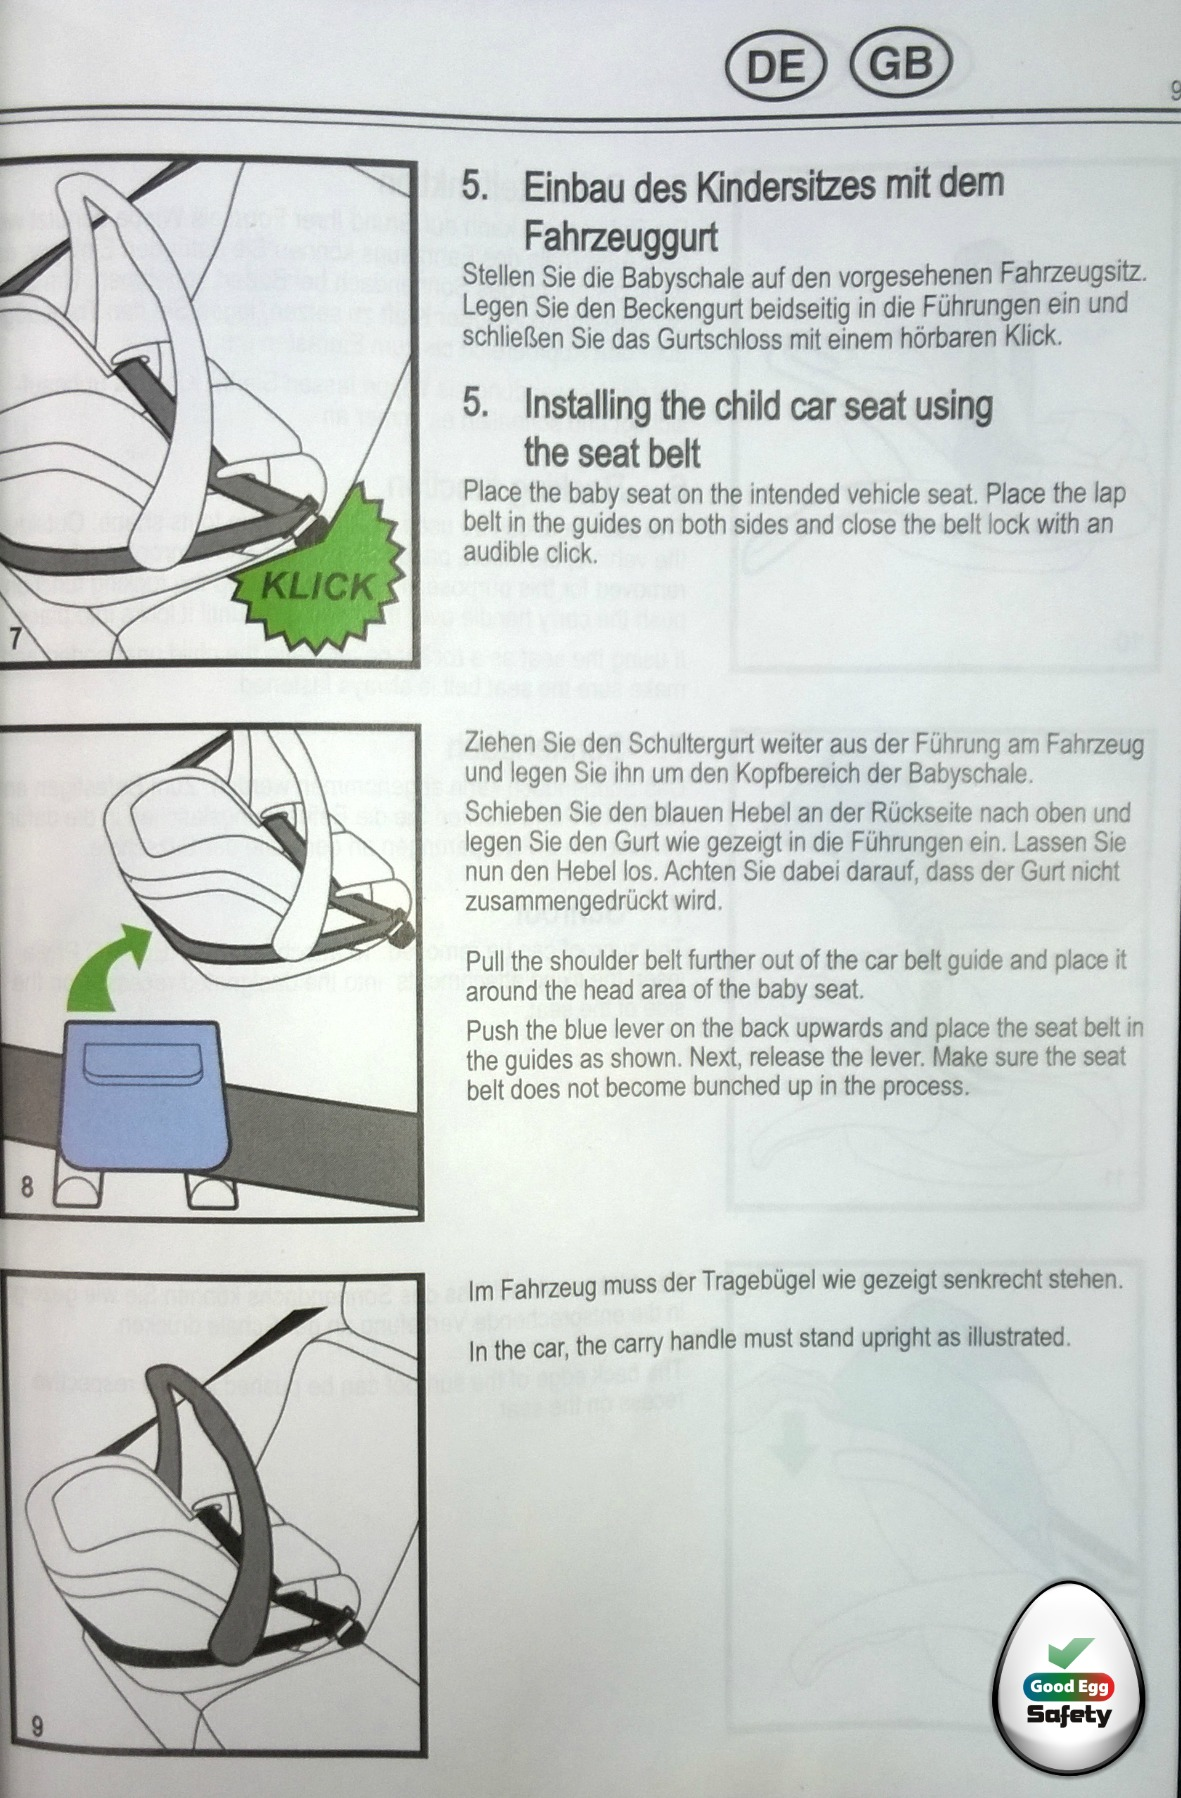 The child seat manual is in many languages.